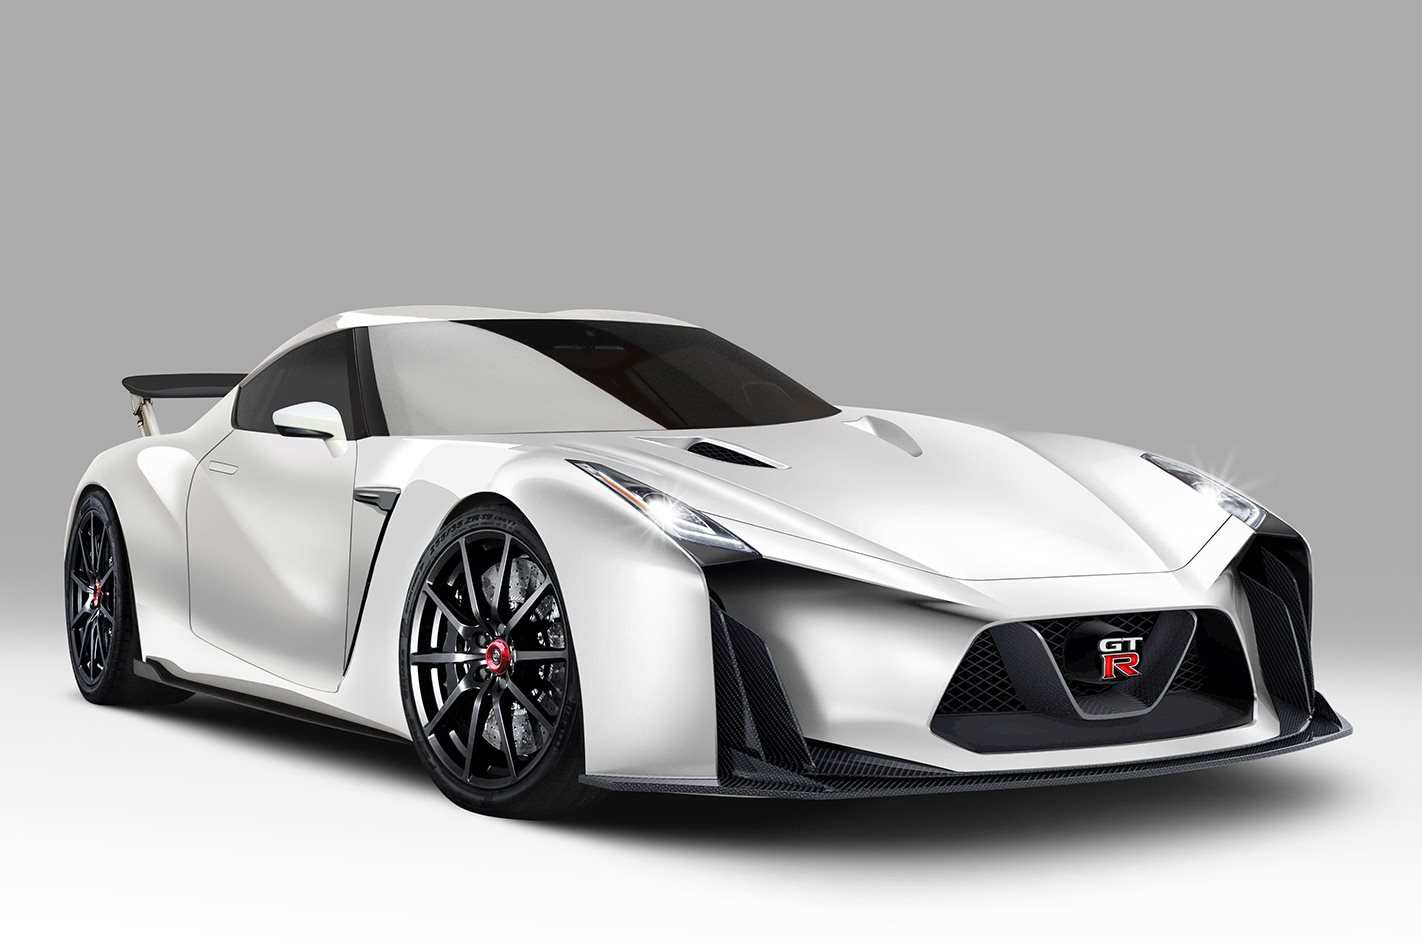 56 New Nissan Gtr R36 Concept 2020 Photos for Nissan Gtr R36 Concept 2020